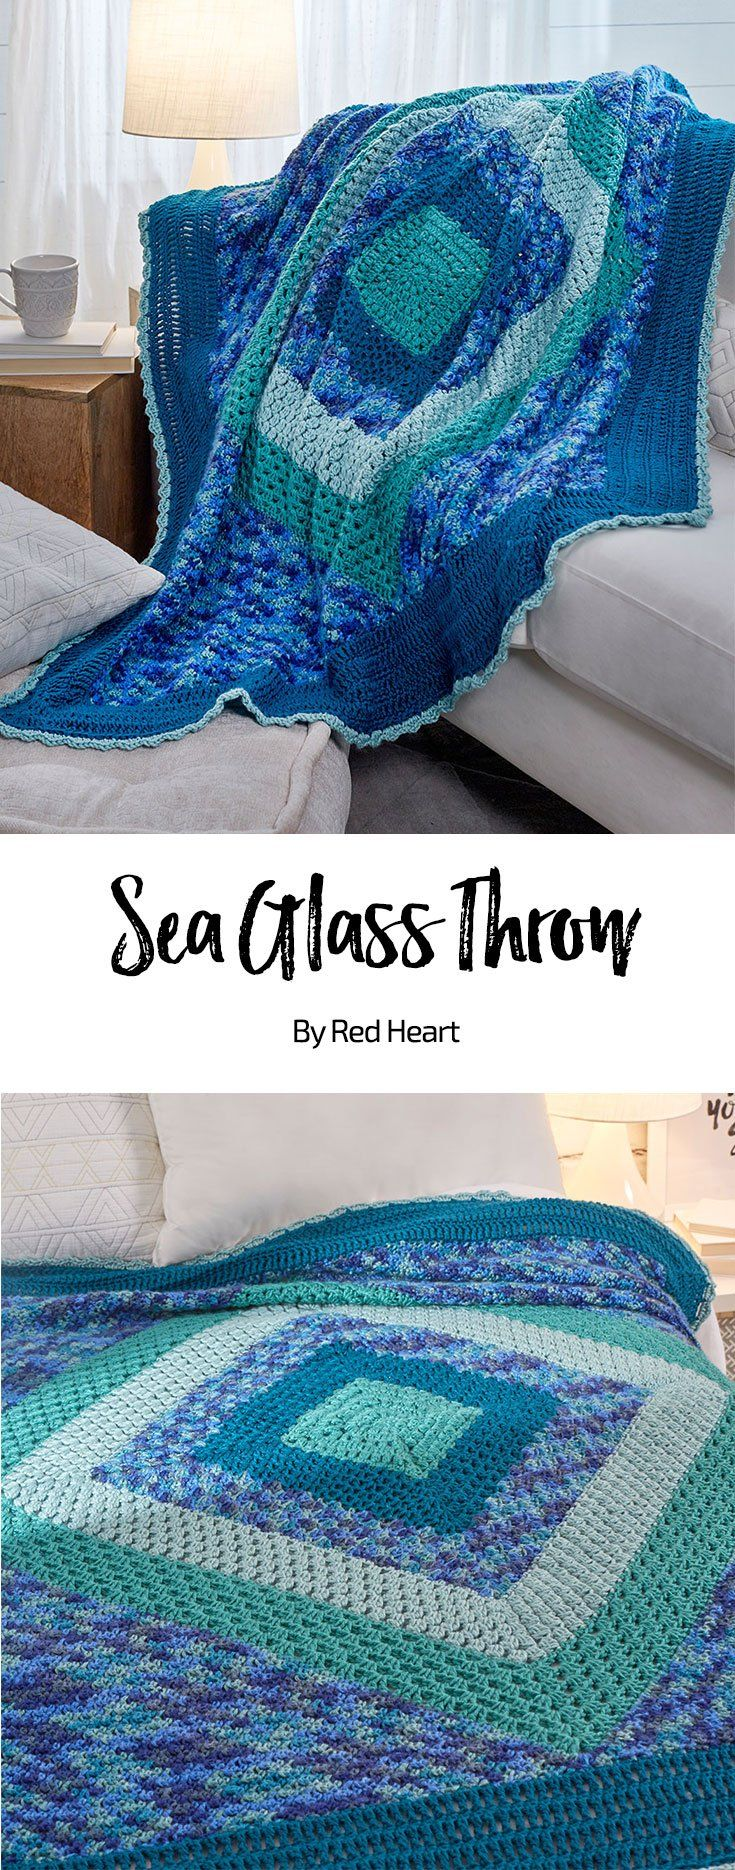 Sea Glass Throw free crochet pattern in Soft yarn. | New, New Free ...